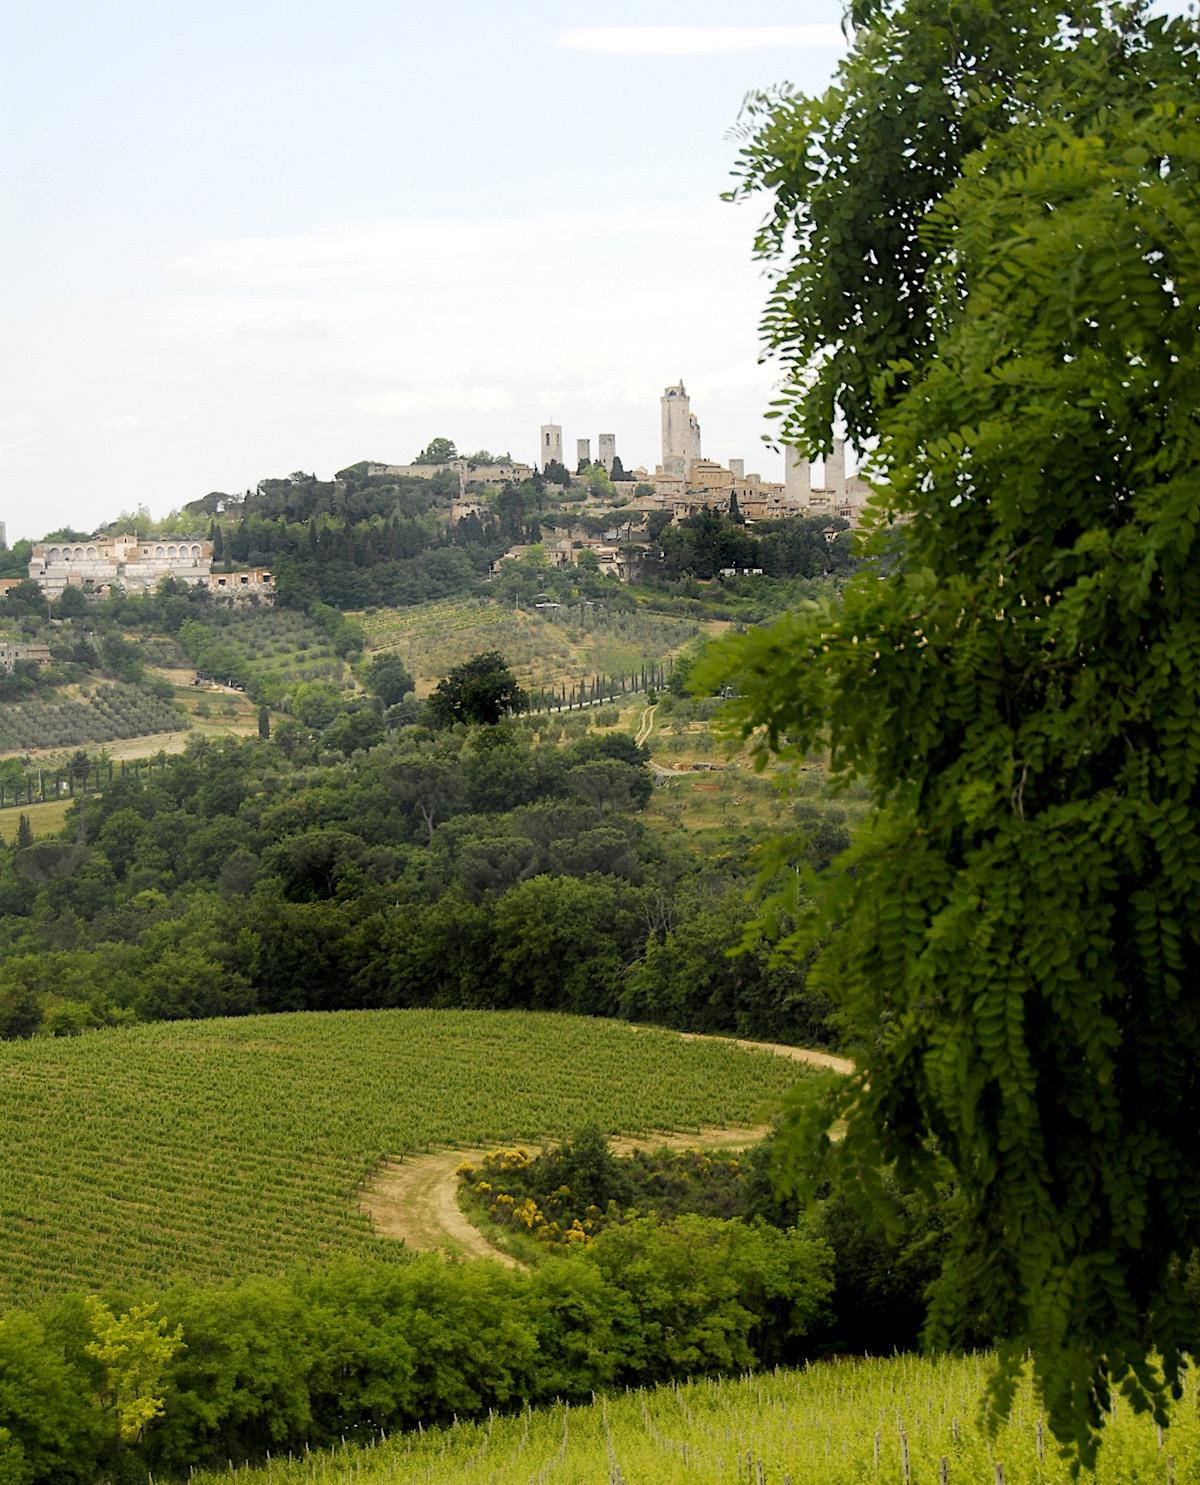 The earliest recorded mentions of Vernaccia di San Gimignano date back to the 13th century – © Consorzio Del Vino Vernaccia Di San Gimignano